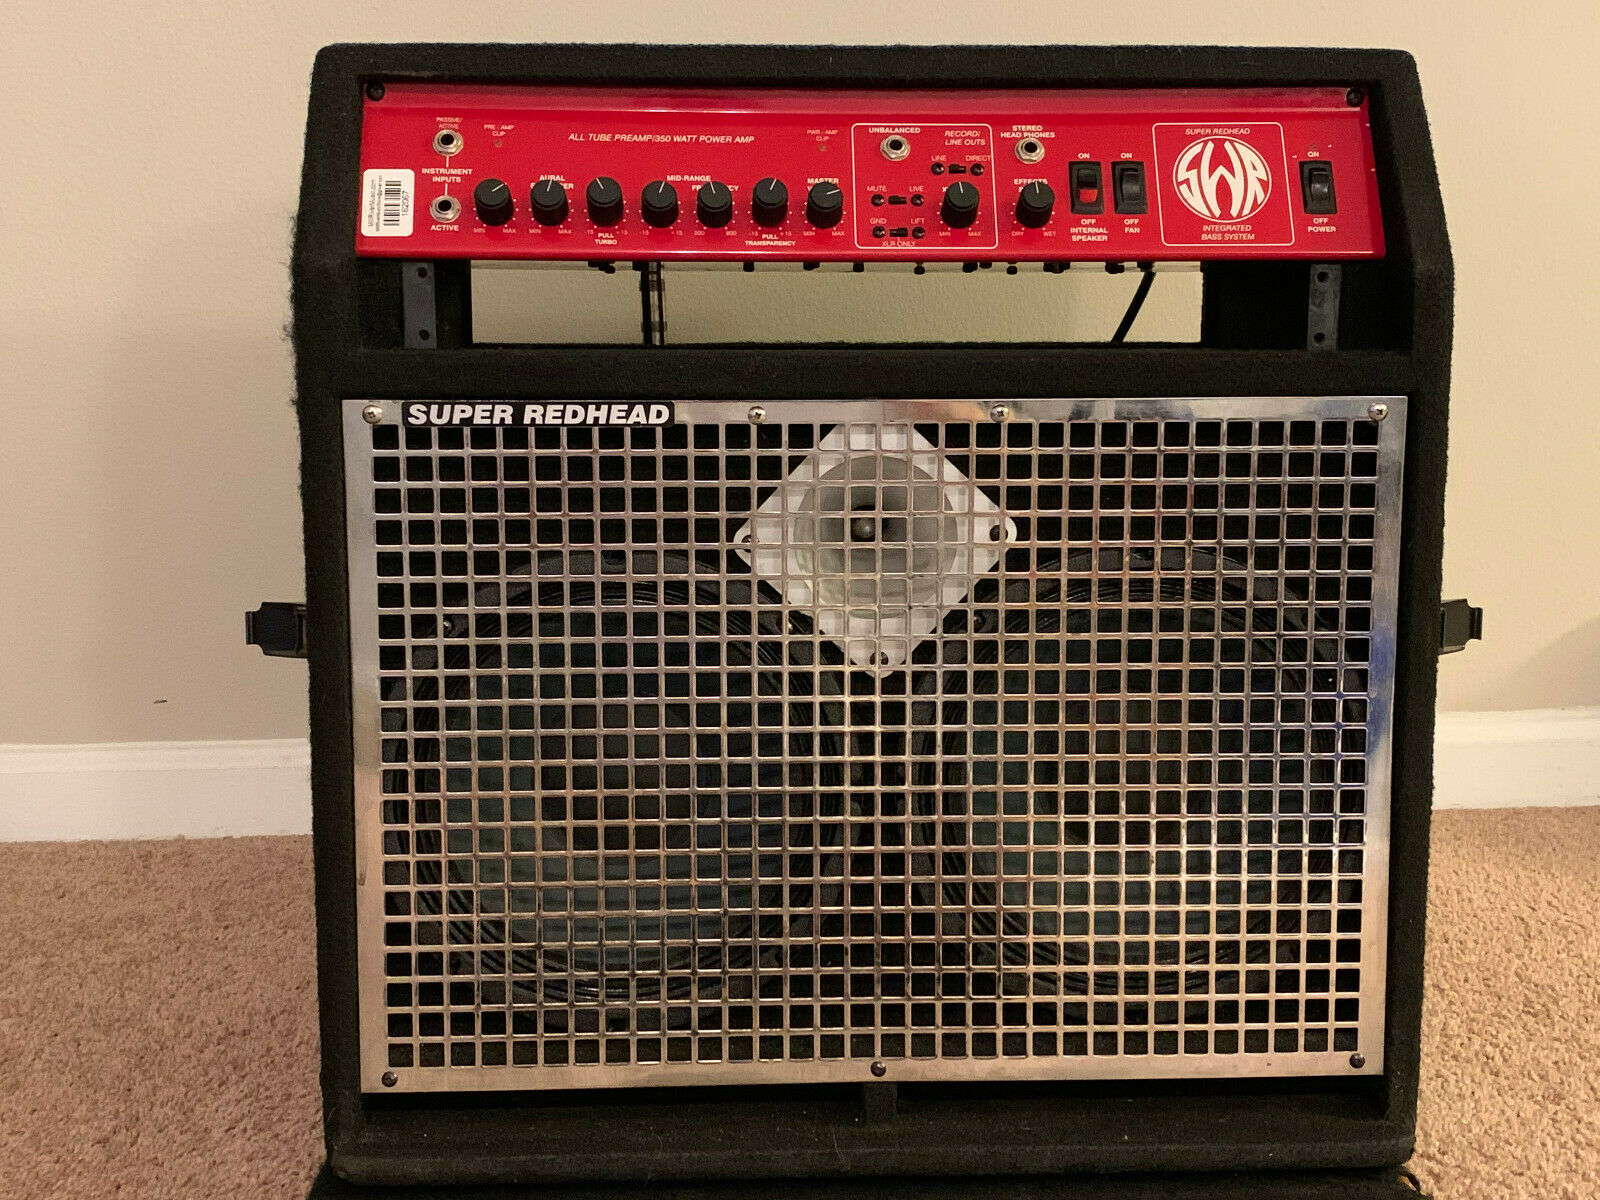 Swr super redhead bass amplifier combo, brother sister make love